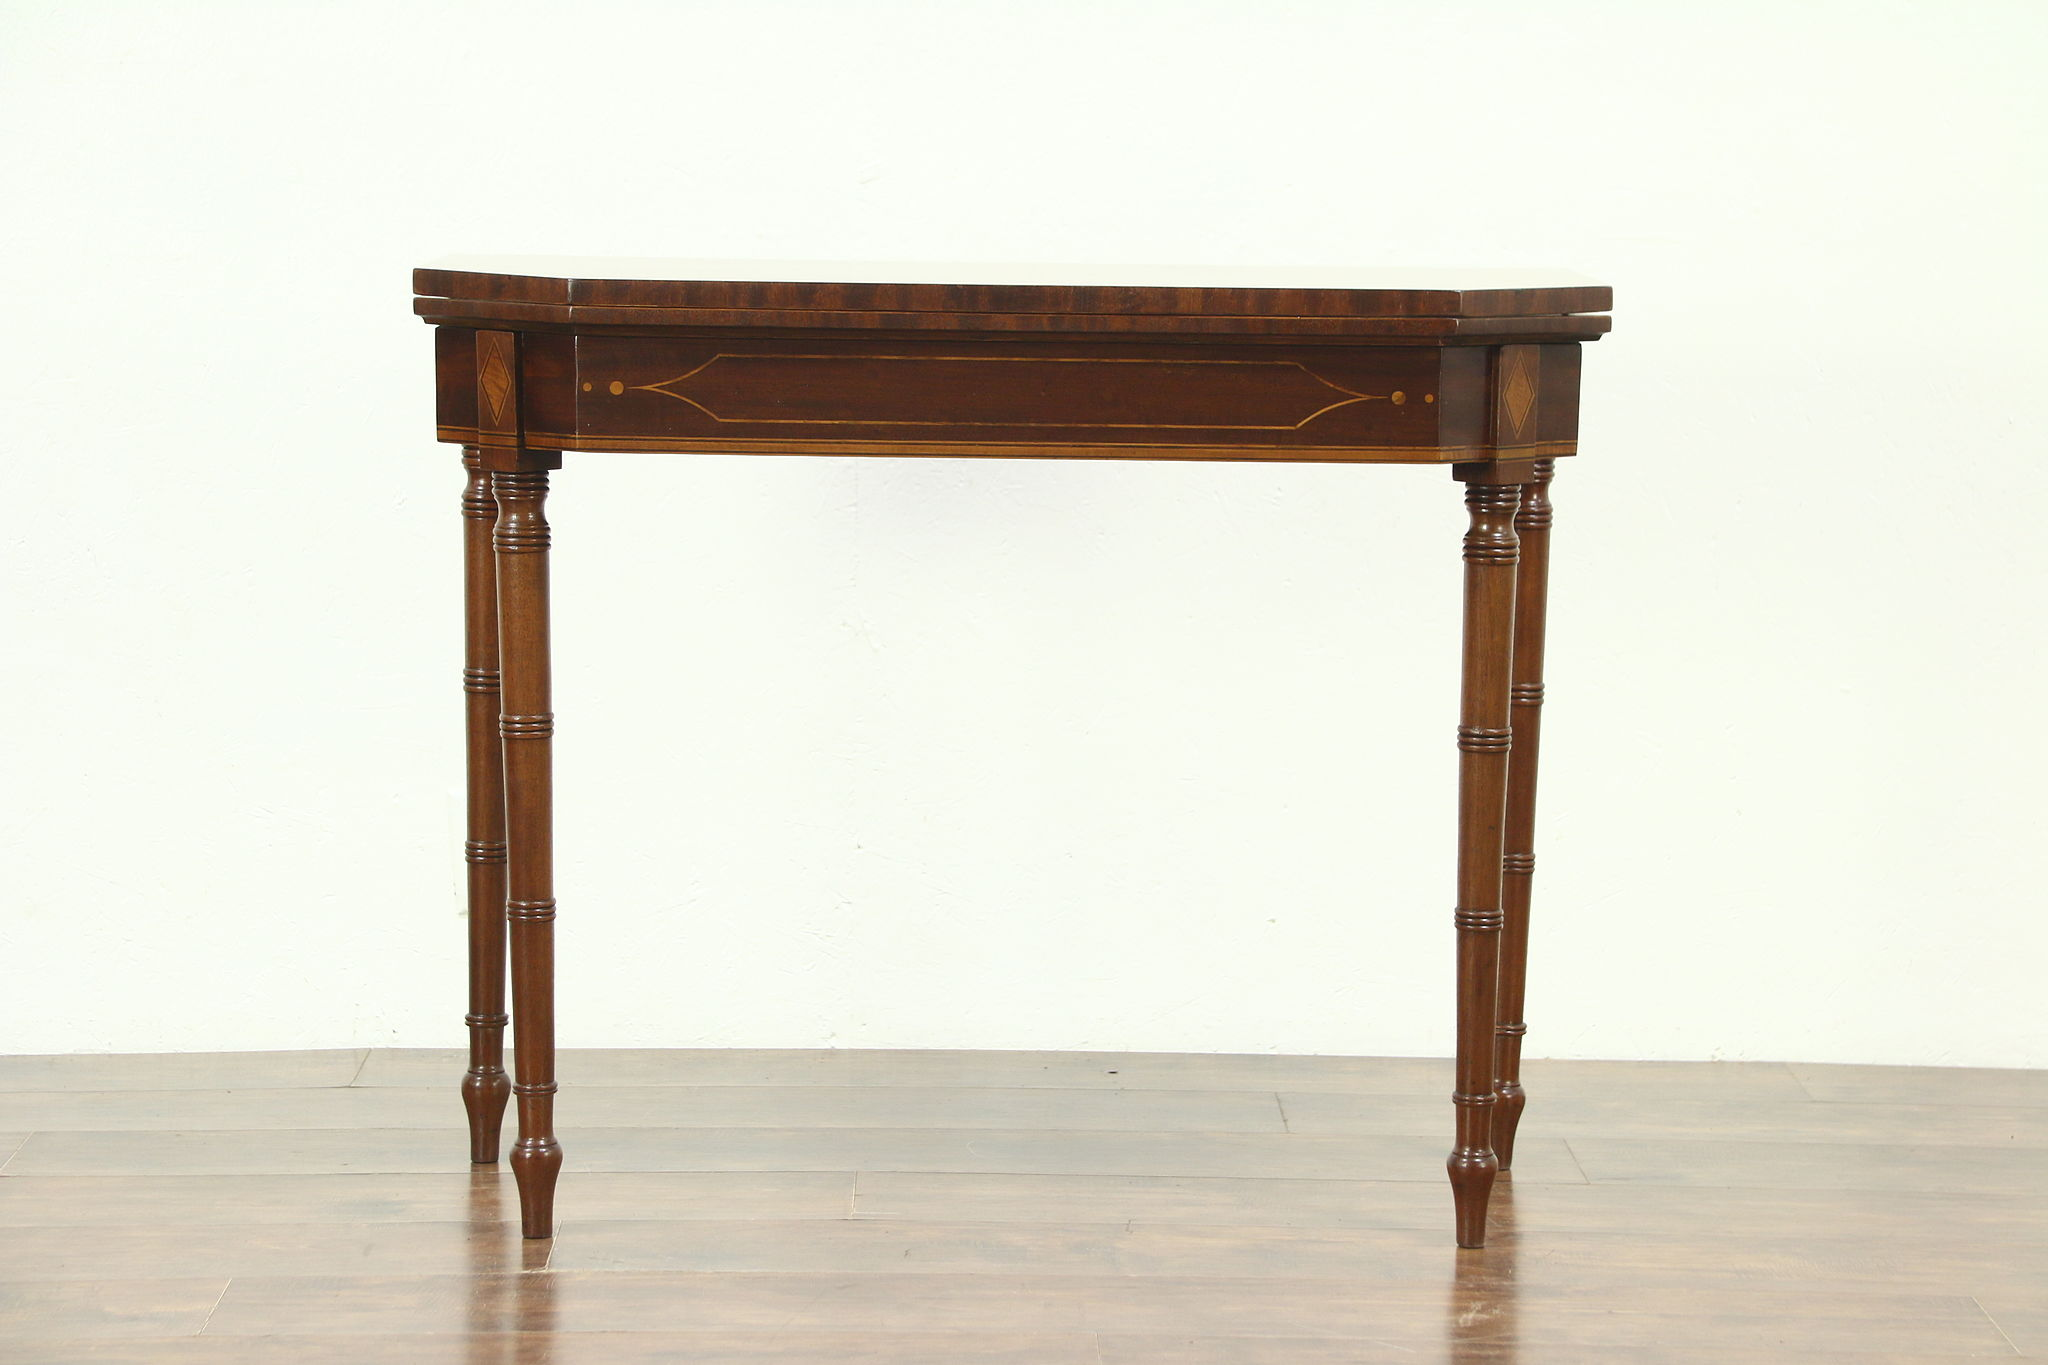 Gentil Console Table Opens To Game Table, Antique Mahogany Inlaid Banding, ...